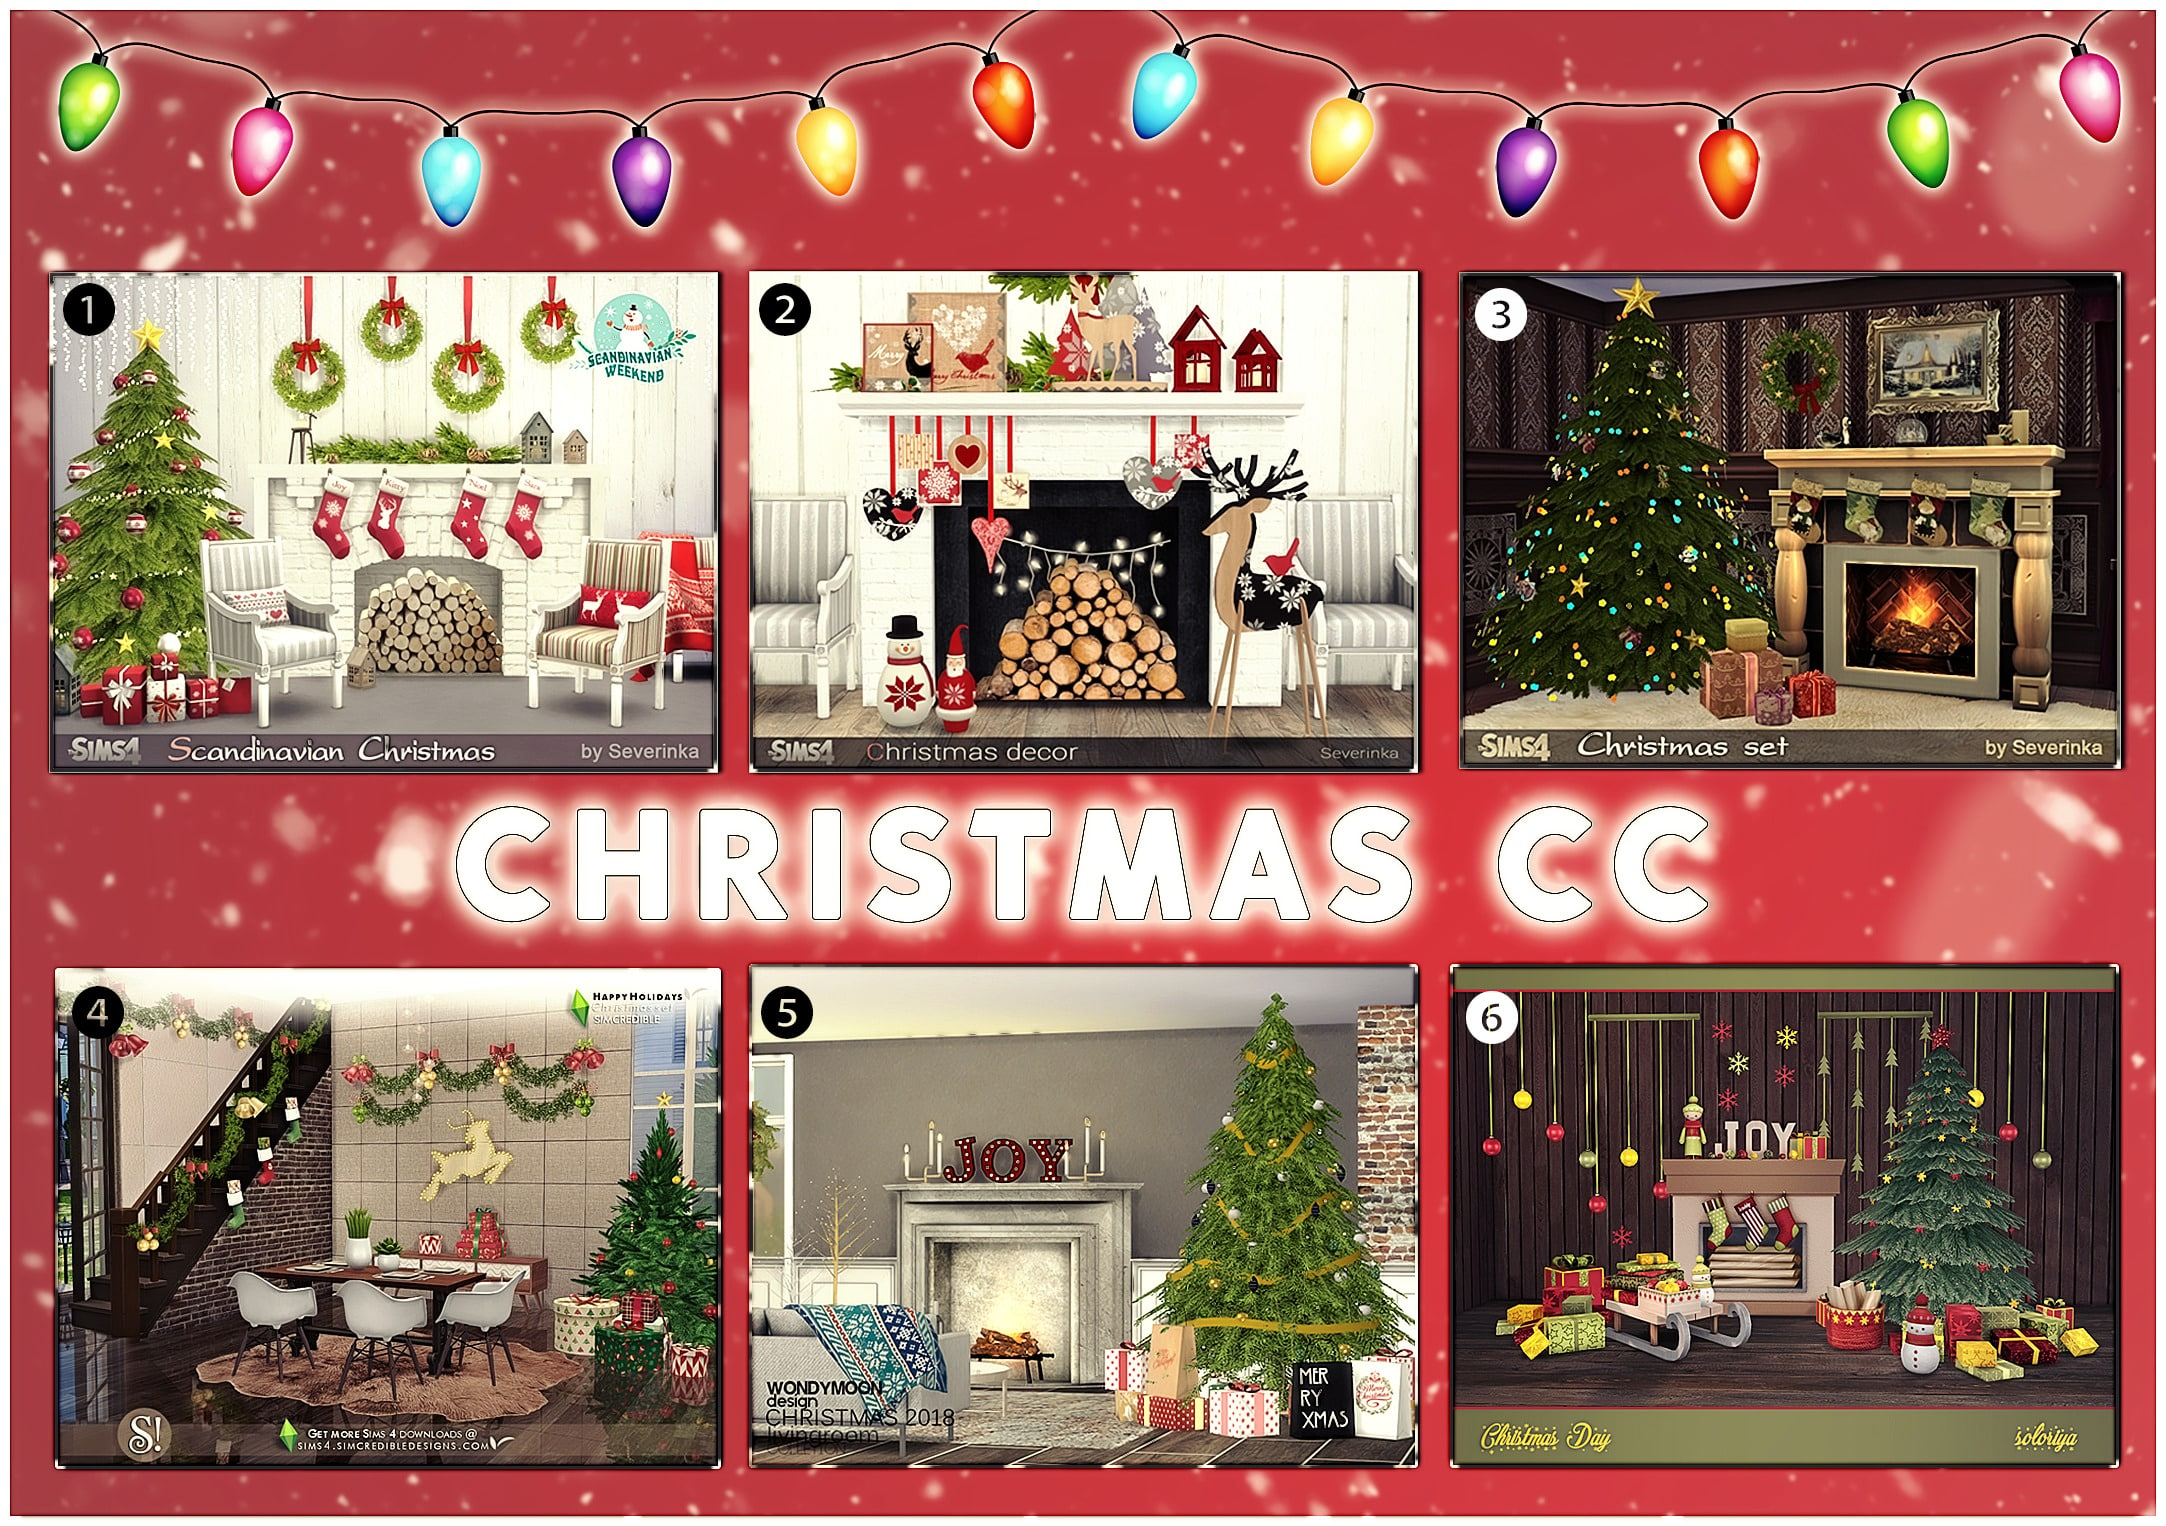 6 Christmas Custom Content Build Sets For The Sims 4 That We Love